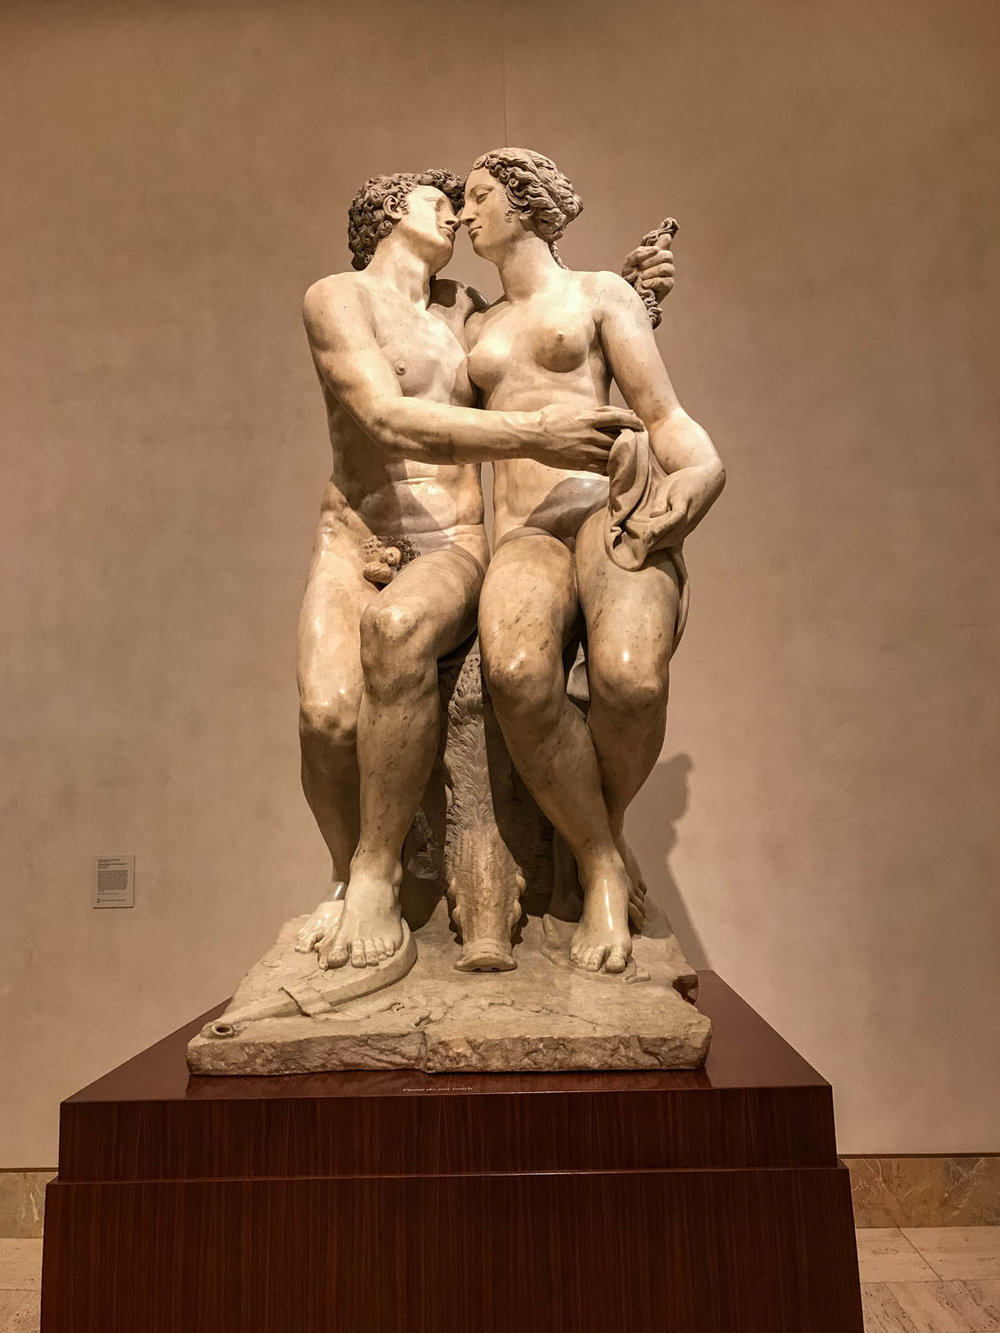 "Atalanta and Meleager with the Calydonian Boar , 1864-1865, Francesco Mosca, called Il Moschino (1525-1578), Carrara marble.  ""The ancient Roman poet Ovid provided the subject matter for this sculpture.  Here, Meleager, prince of Calydon, is moments away from embracing Atalanta, the virgin huntress with whom he has fallen in love.  The two have just killed a wild boar that had been unleashed upon the countryside by Diana, goddess of the hunt, for lack of attention paid to her by the kingdom of Calydon.  The head of their trophy, the boar, lies between the two lover's feed.  The smooth sensuality of the surface of this sculpture is typical of the refined tase of Mosca's Florentine patrons at the time."""